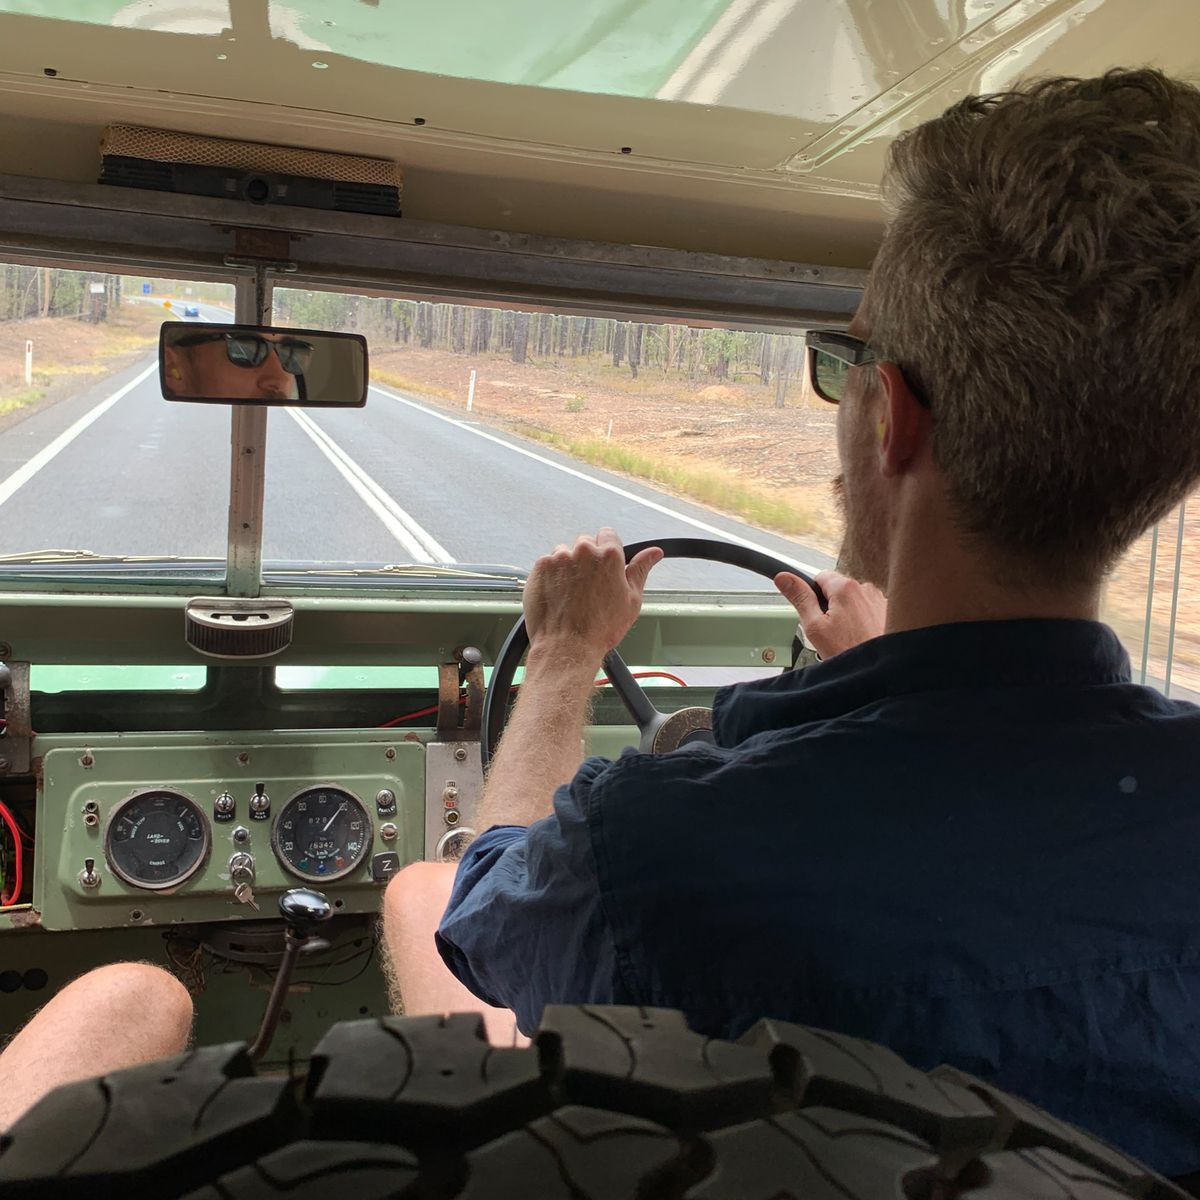 Rent the converted electric vehicle for an Australian road trip.